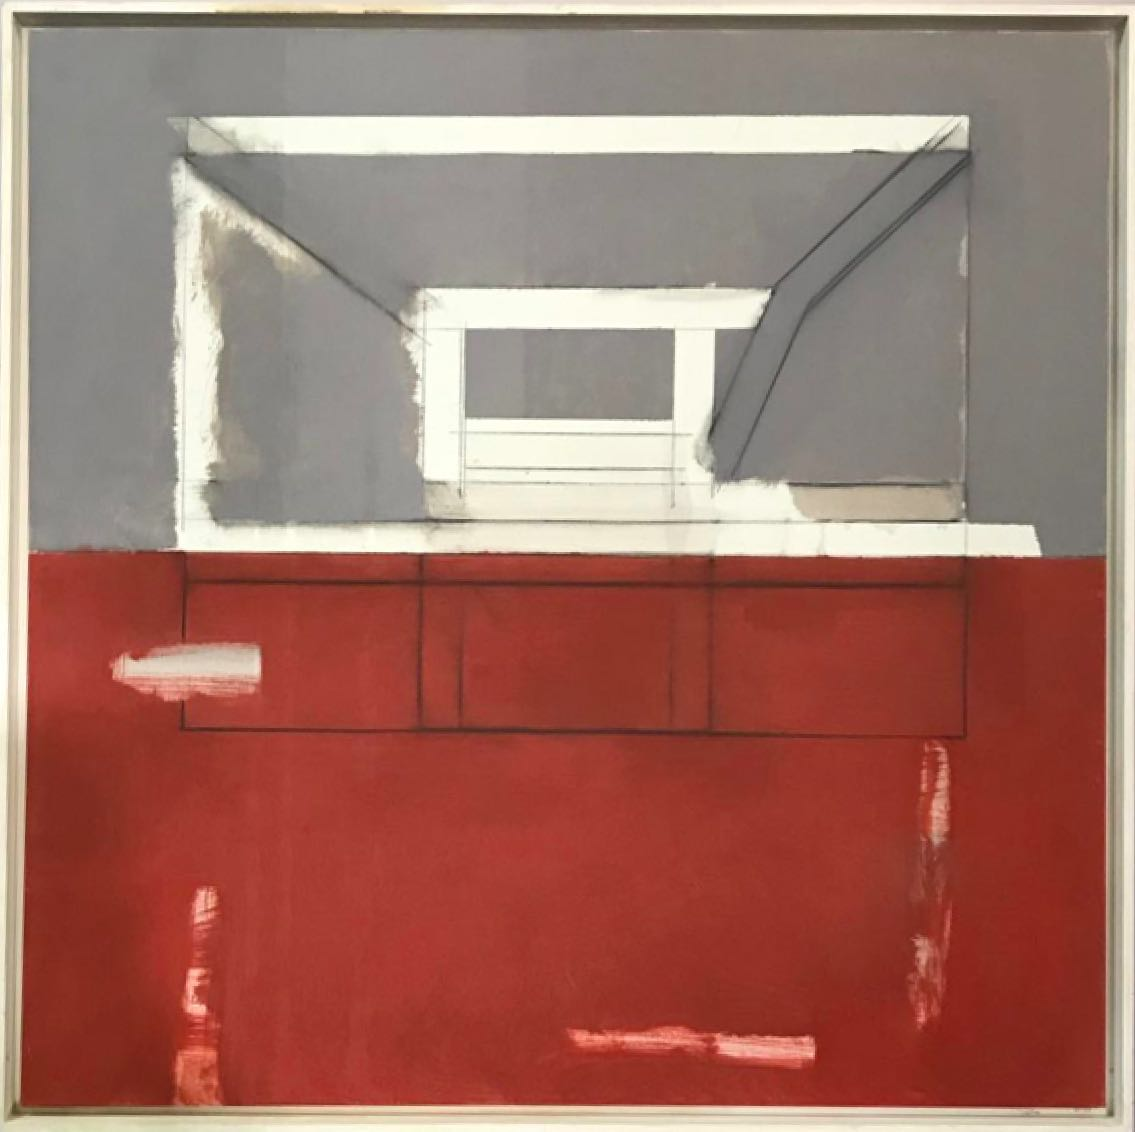 Antonio Freiles ARCHITECTURE, 2009 Oil and graphite on canvas. 100 x 100 cm (39 x 39 in)